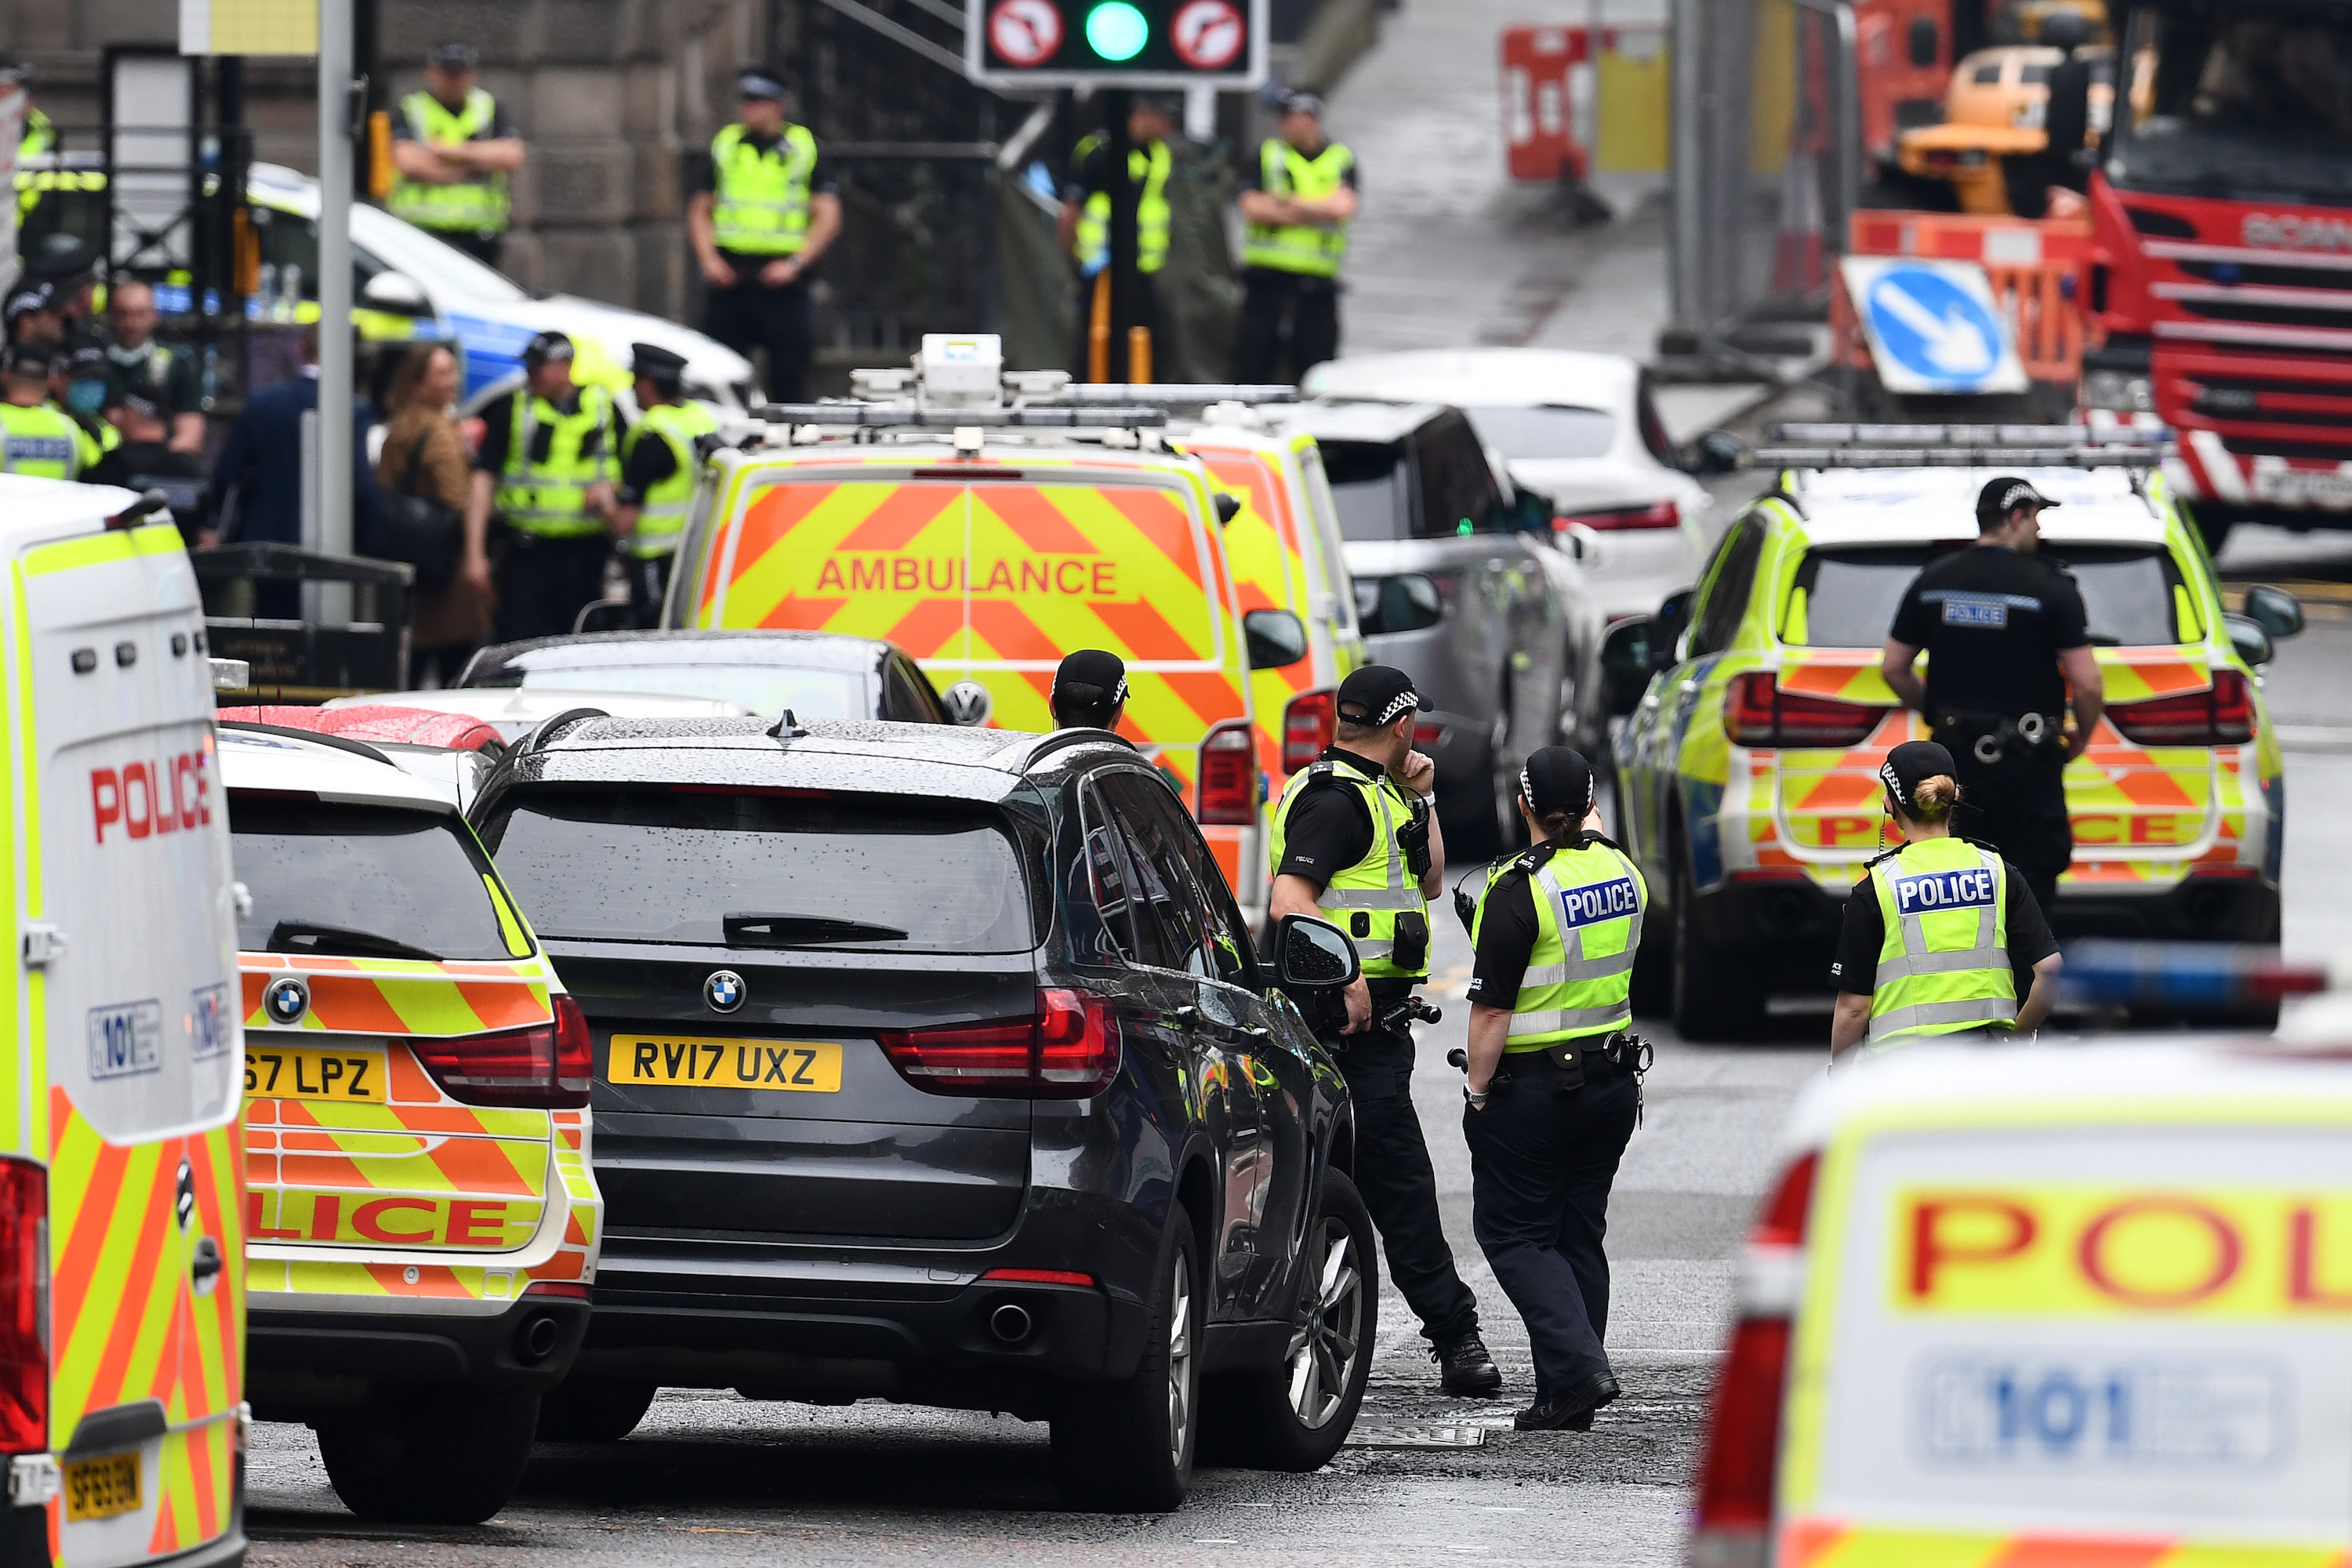 Emergency services at the scene after reports of three people being killed in a central Glasgow hotel on June 26, 2020 in Glasgow, Scotland.